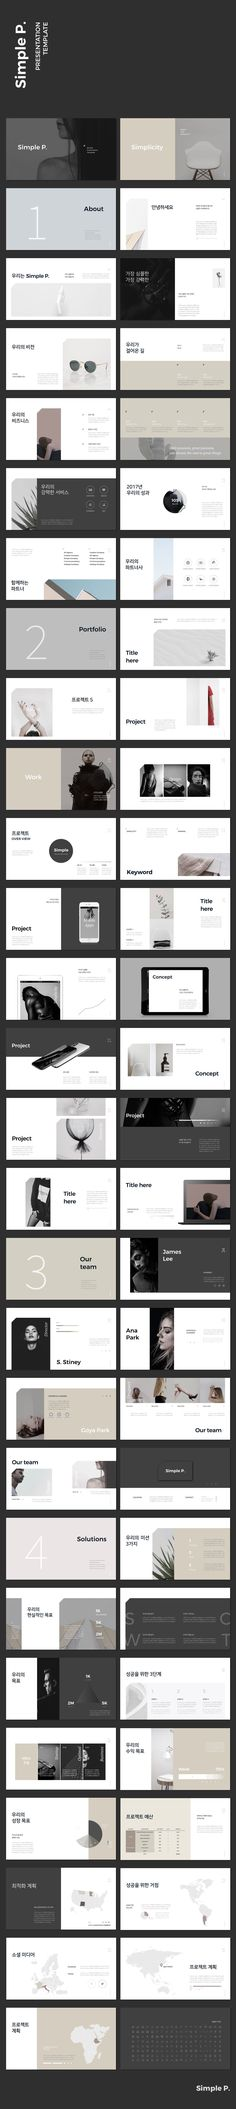 Simple P. Presentation Template #keynote #presentation #simple #minimal #portfolio #business #marketing